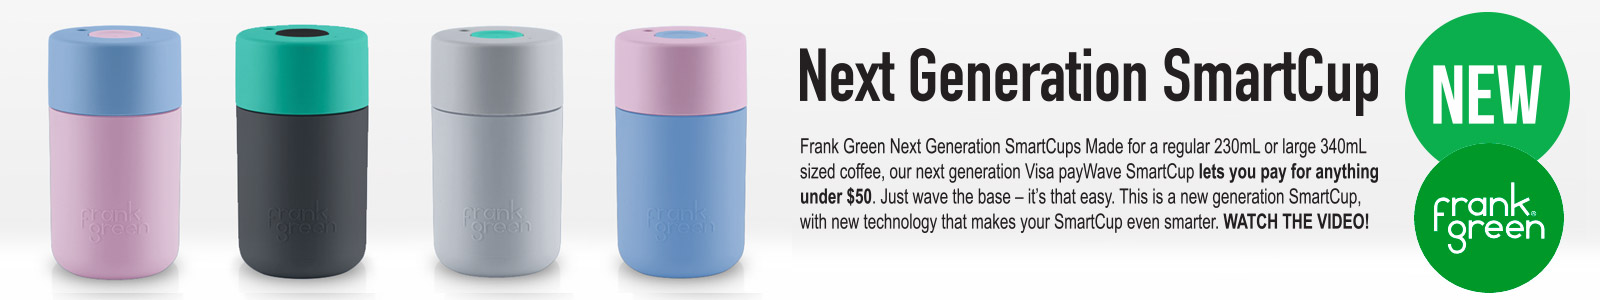 Next Generation SmartCups